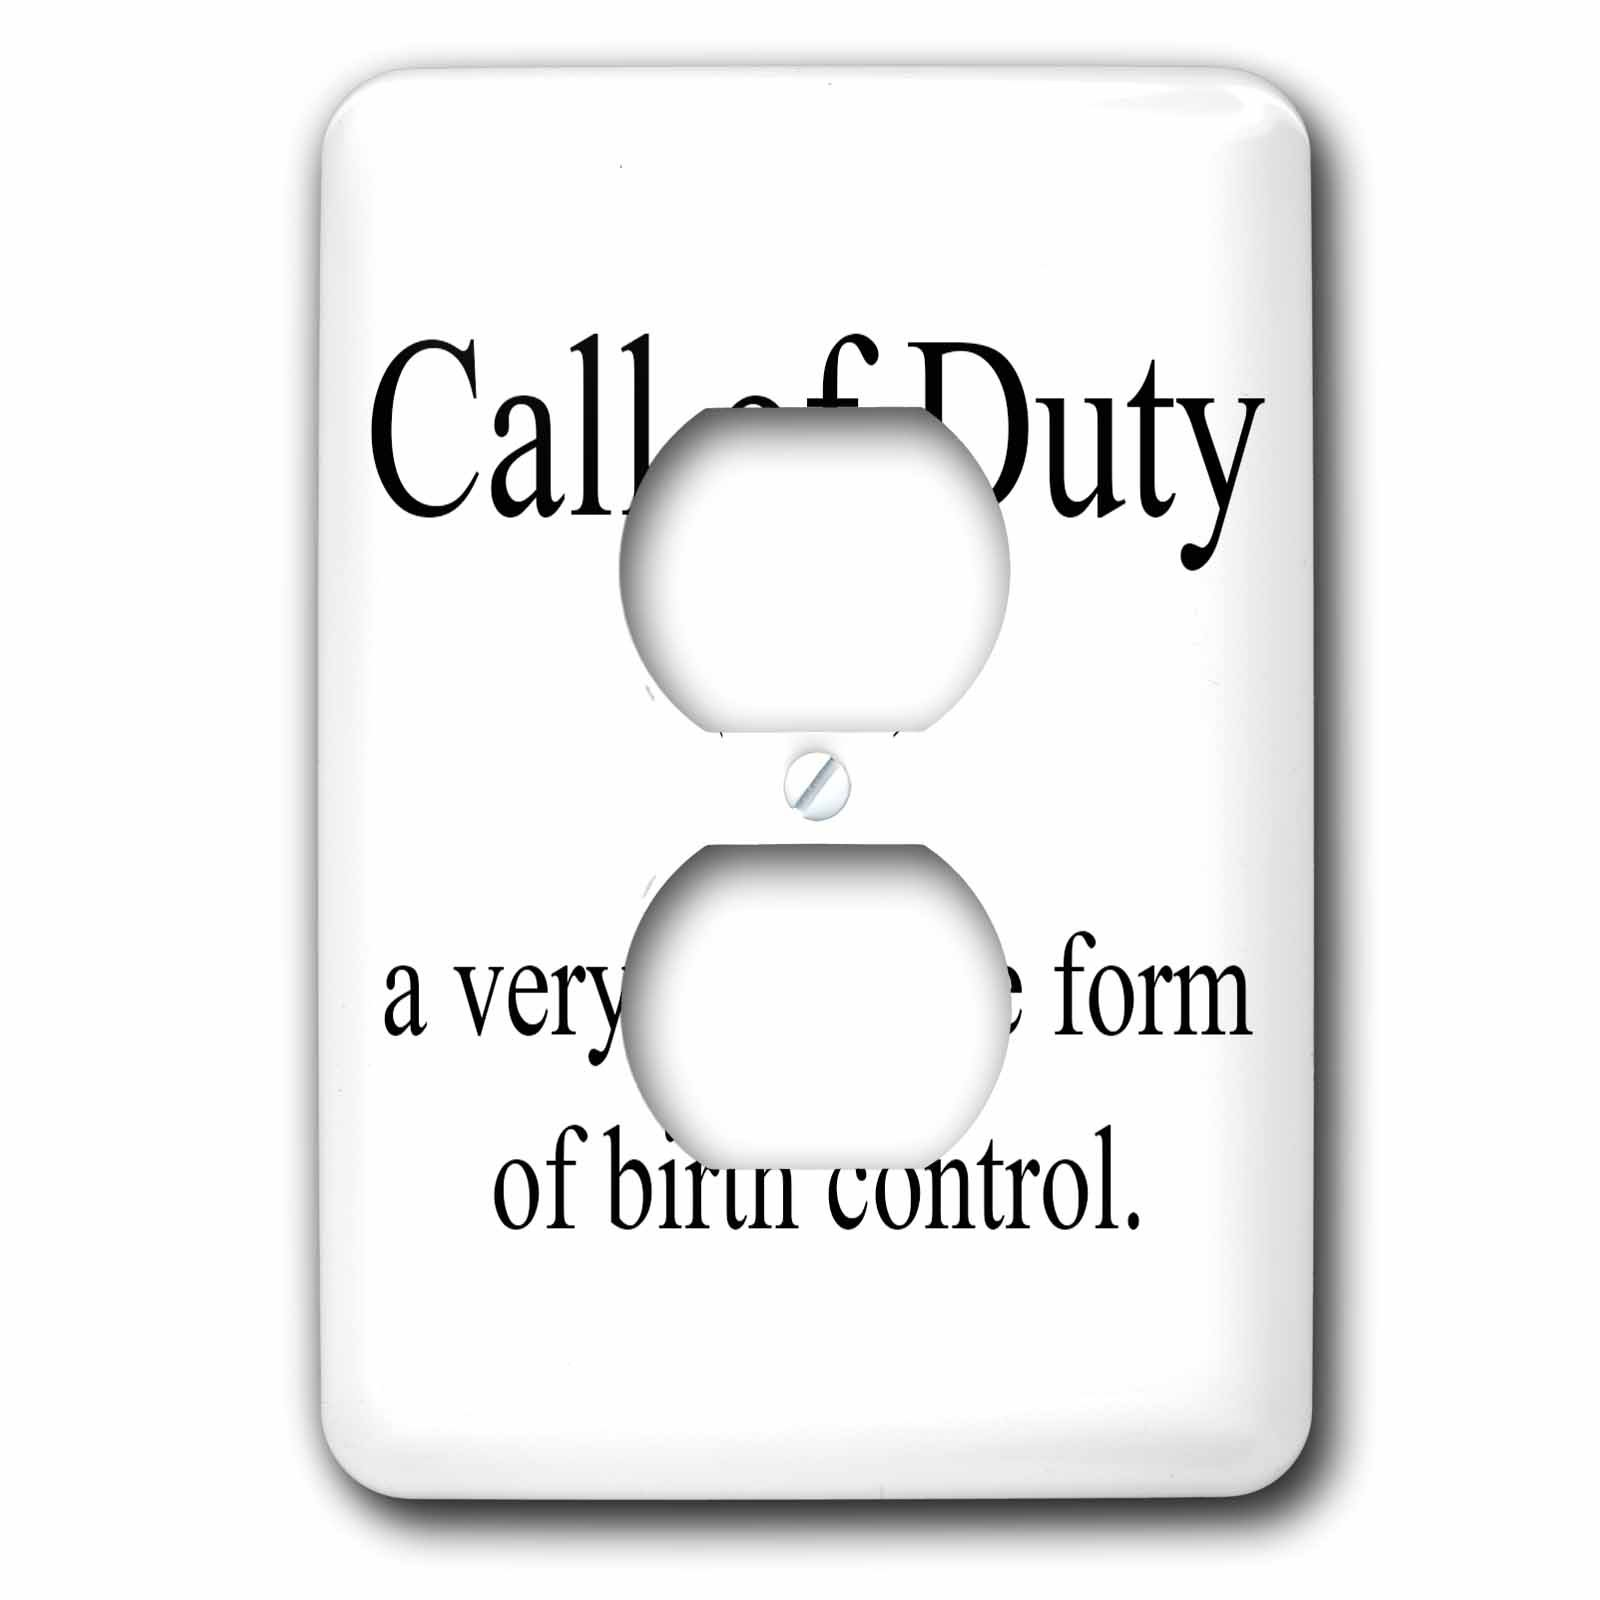 3dRose lsp_173336_6 Call Of Duty Noun A Very Effective Form Of Birth Control. - 2 Plug Outlet Cover by 3dRose